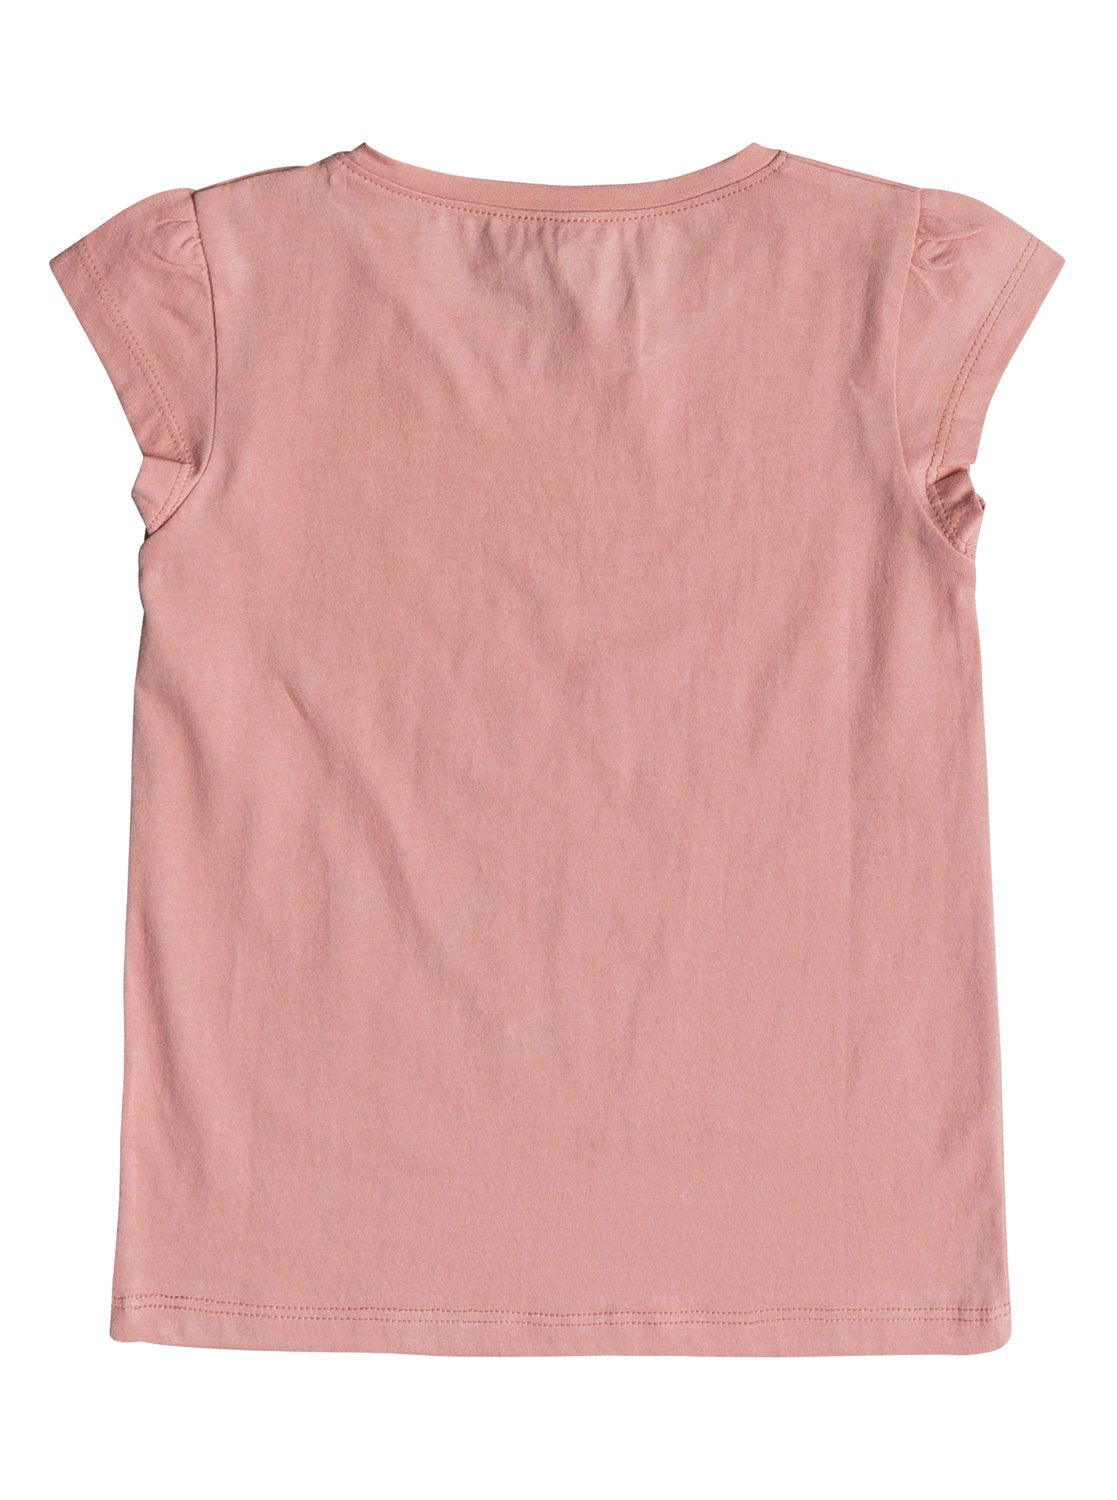 Roxy Girls Moid Tee Shirt In Peaches N Cream